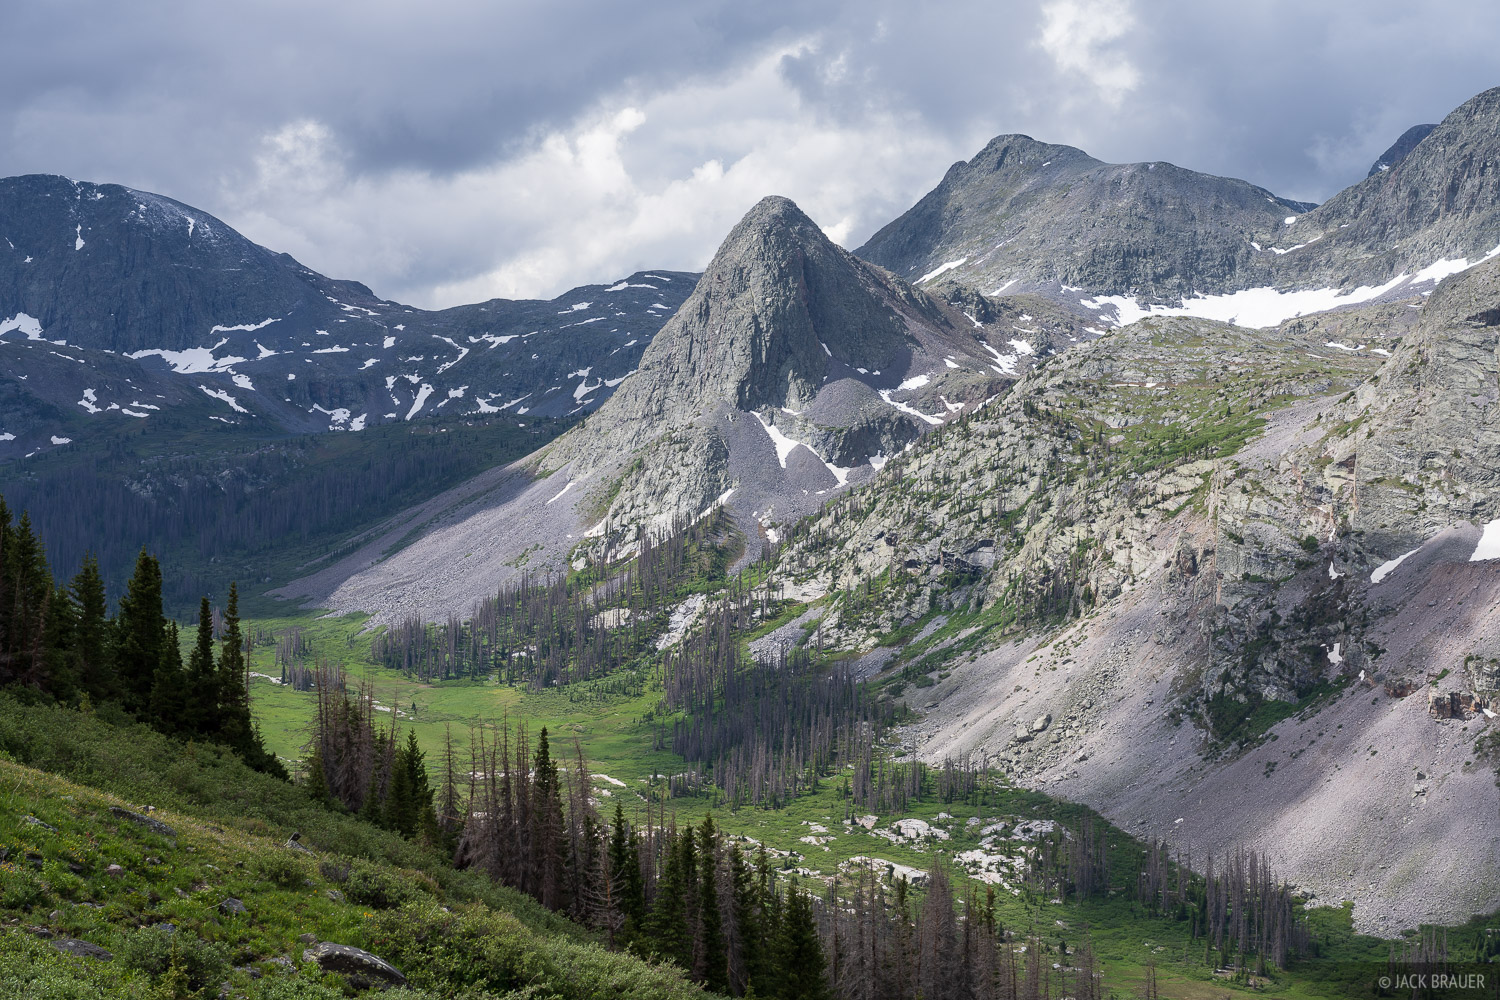 A rugged glacier-carved valley deep in the Weminuche Wilderness.